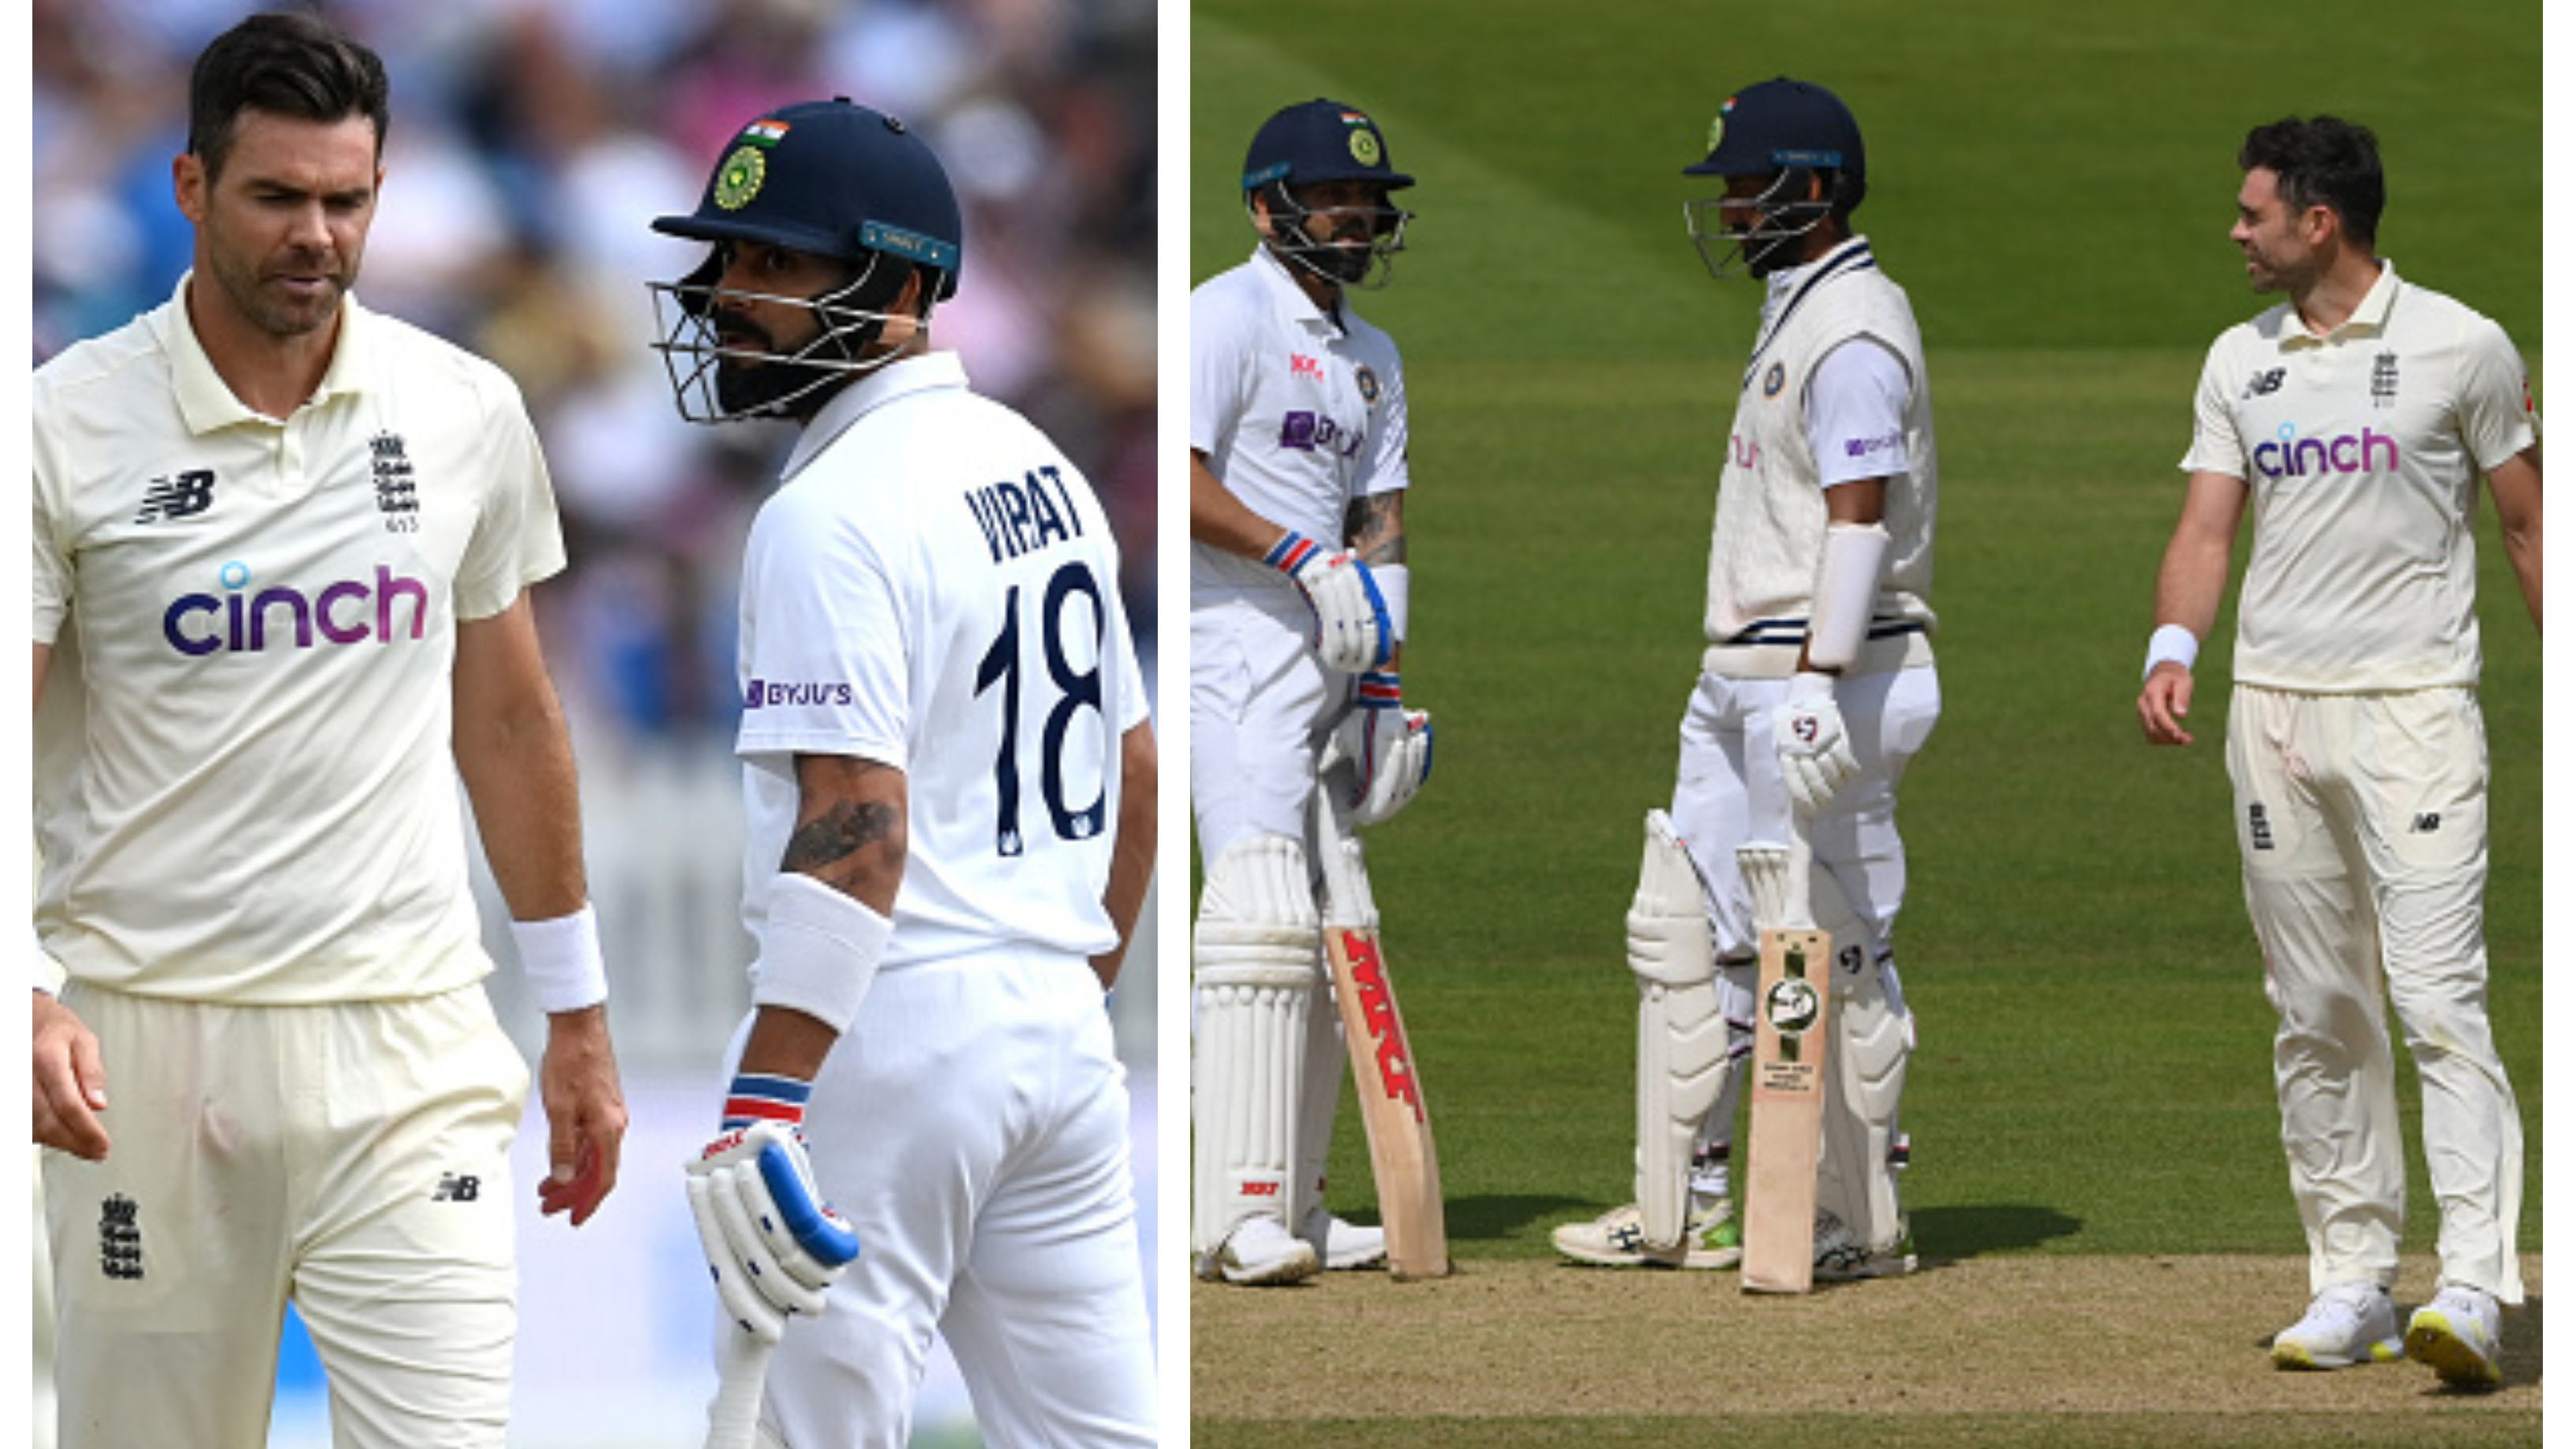 ENG v IND 2021: WATCH – Full Video of sledging incident between Kohli and Anderson emerges from Lord's Test